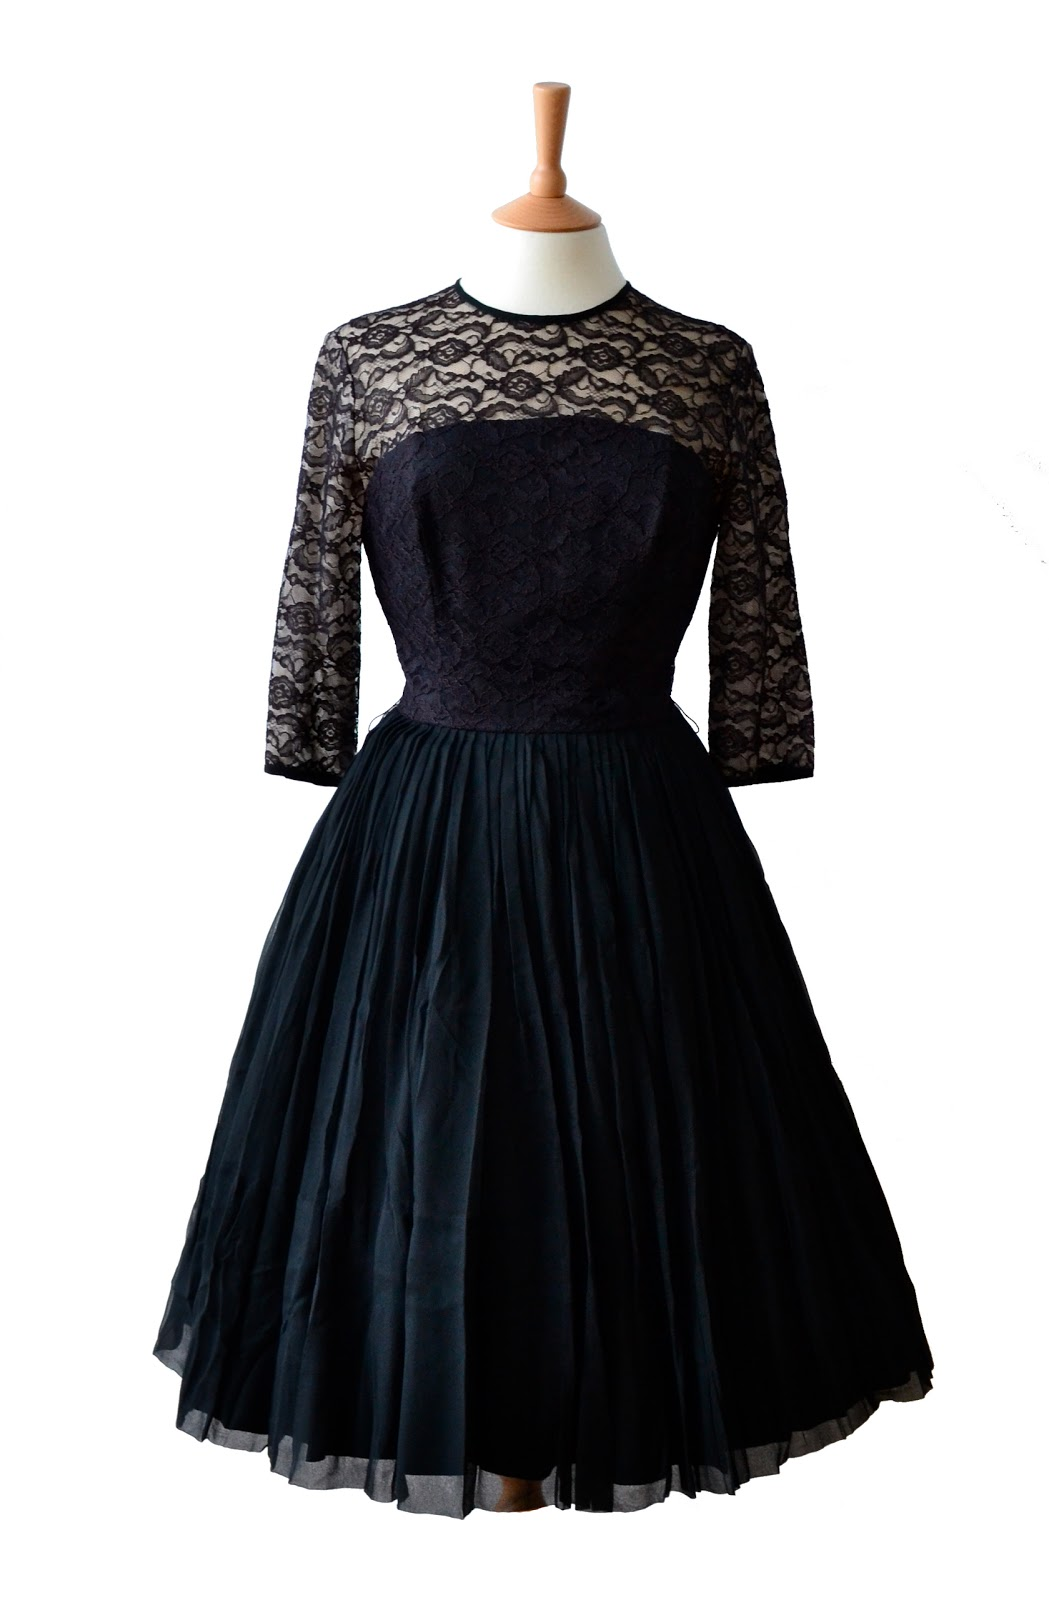 Coming SoonNEW 1950s Vintage Dresses!